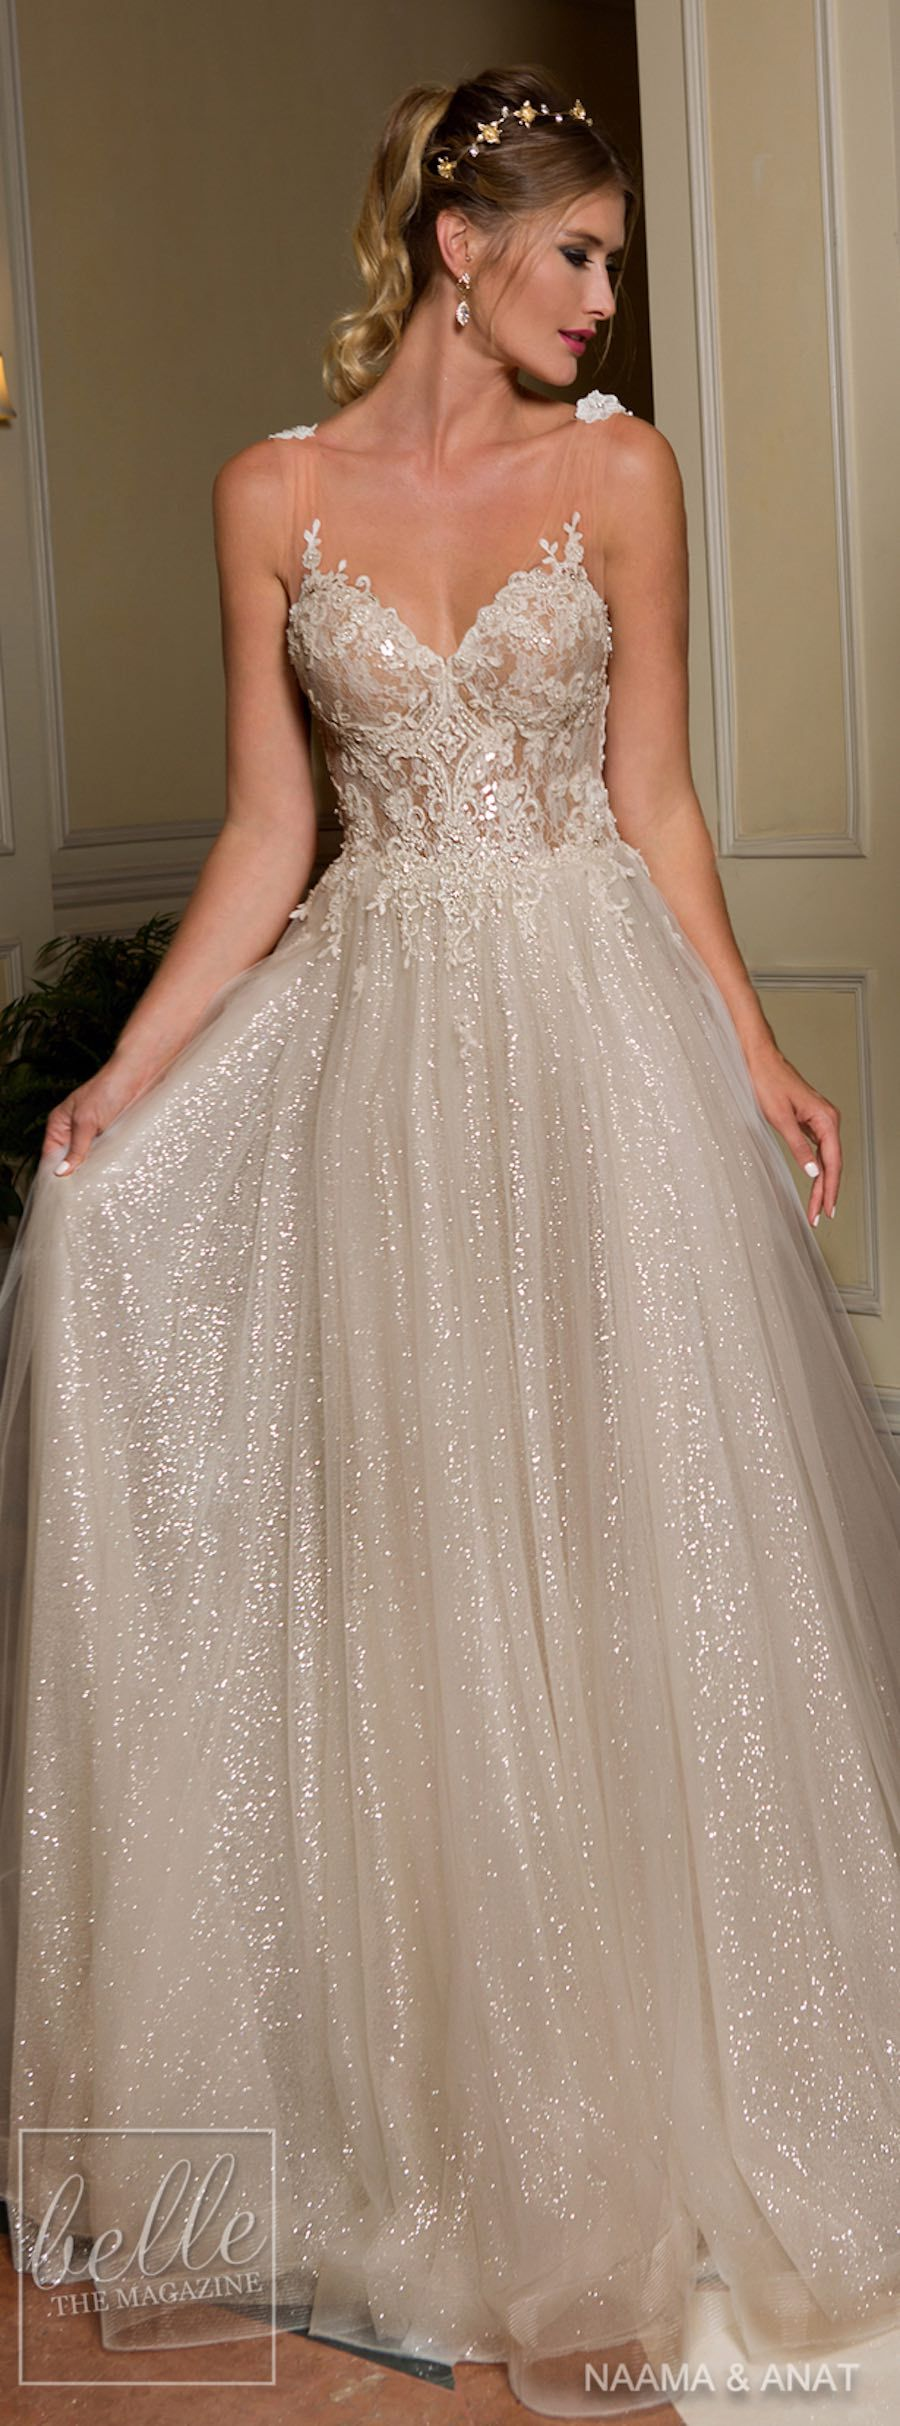 Naama u anat wedding dresses